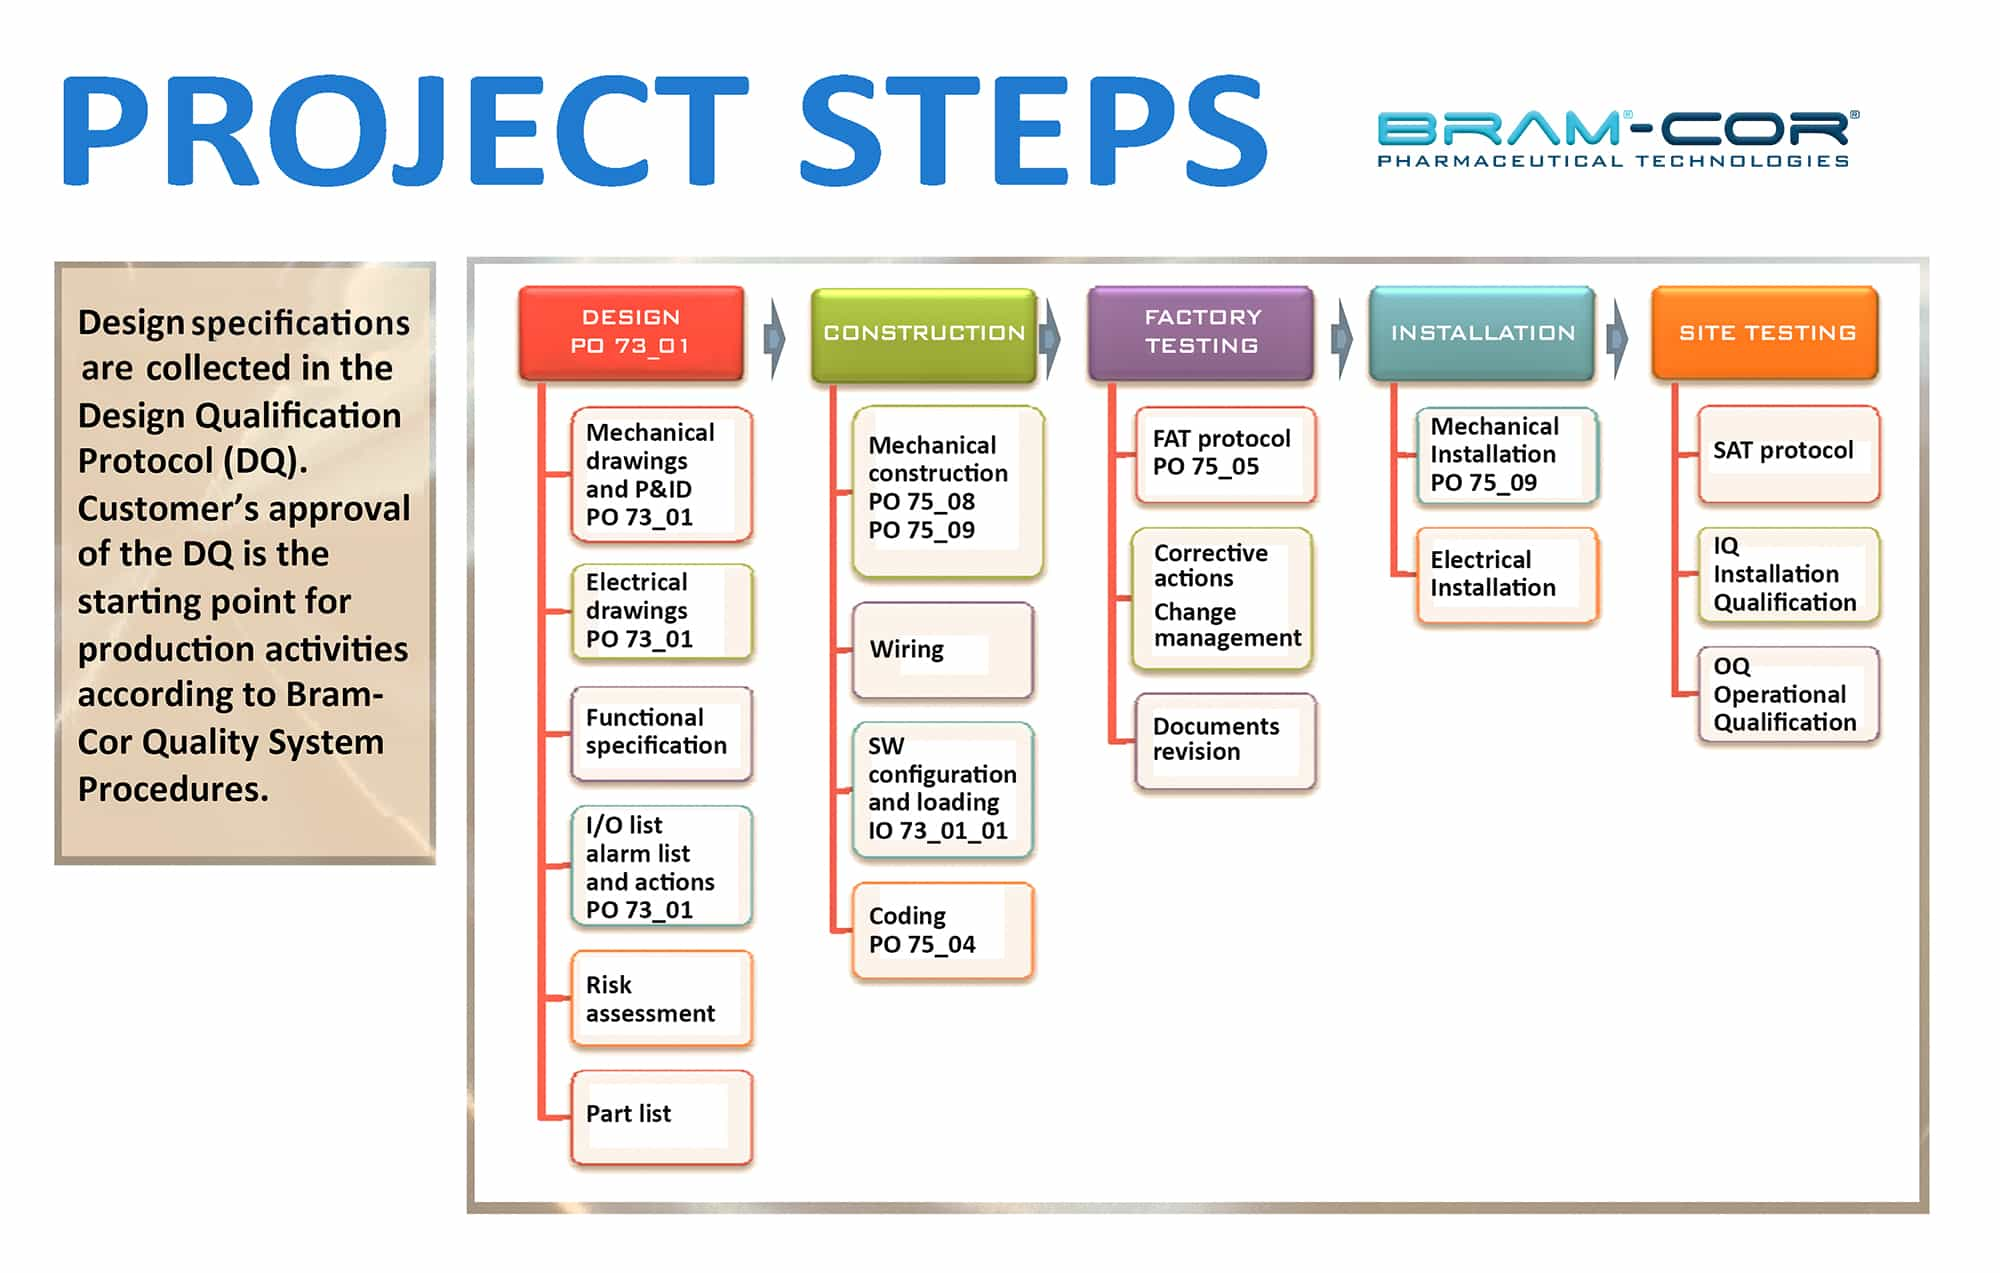 pharmaceutical project steps